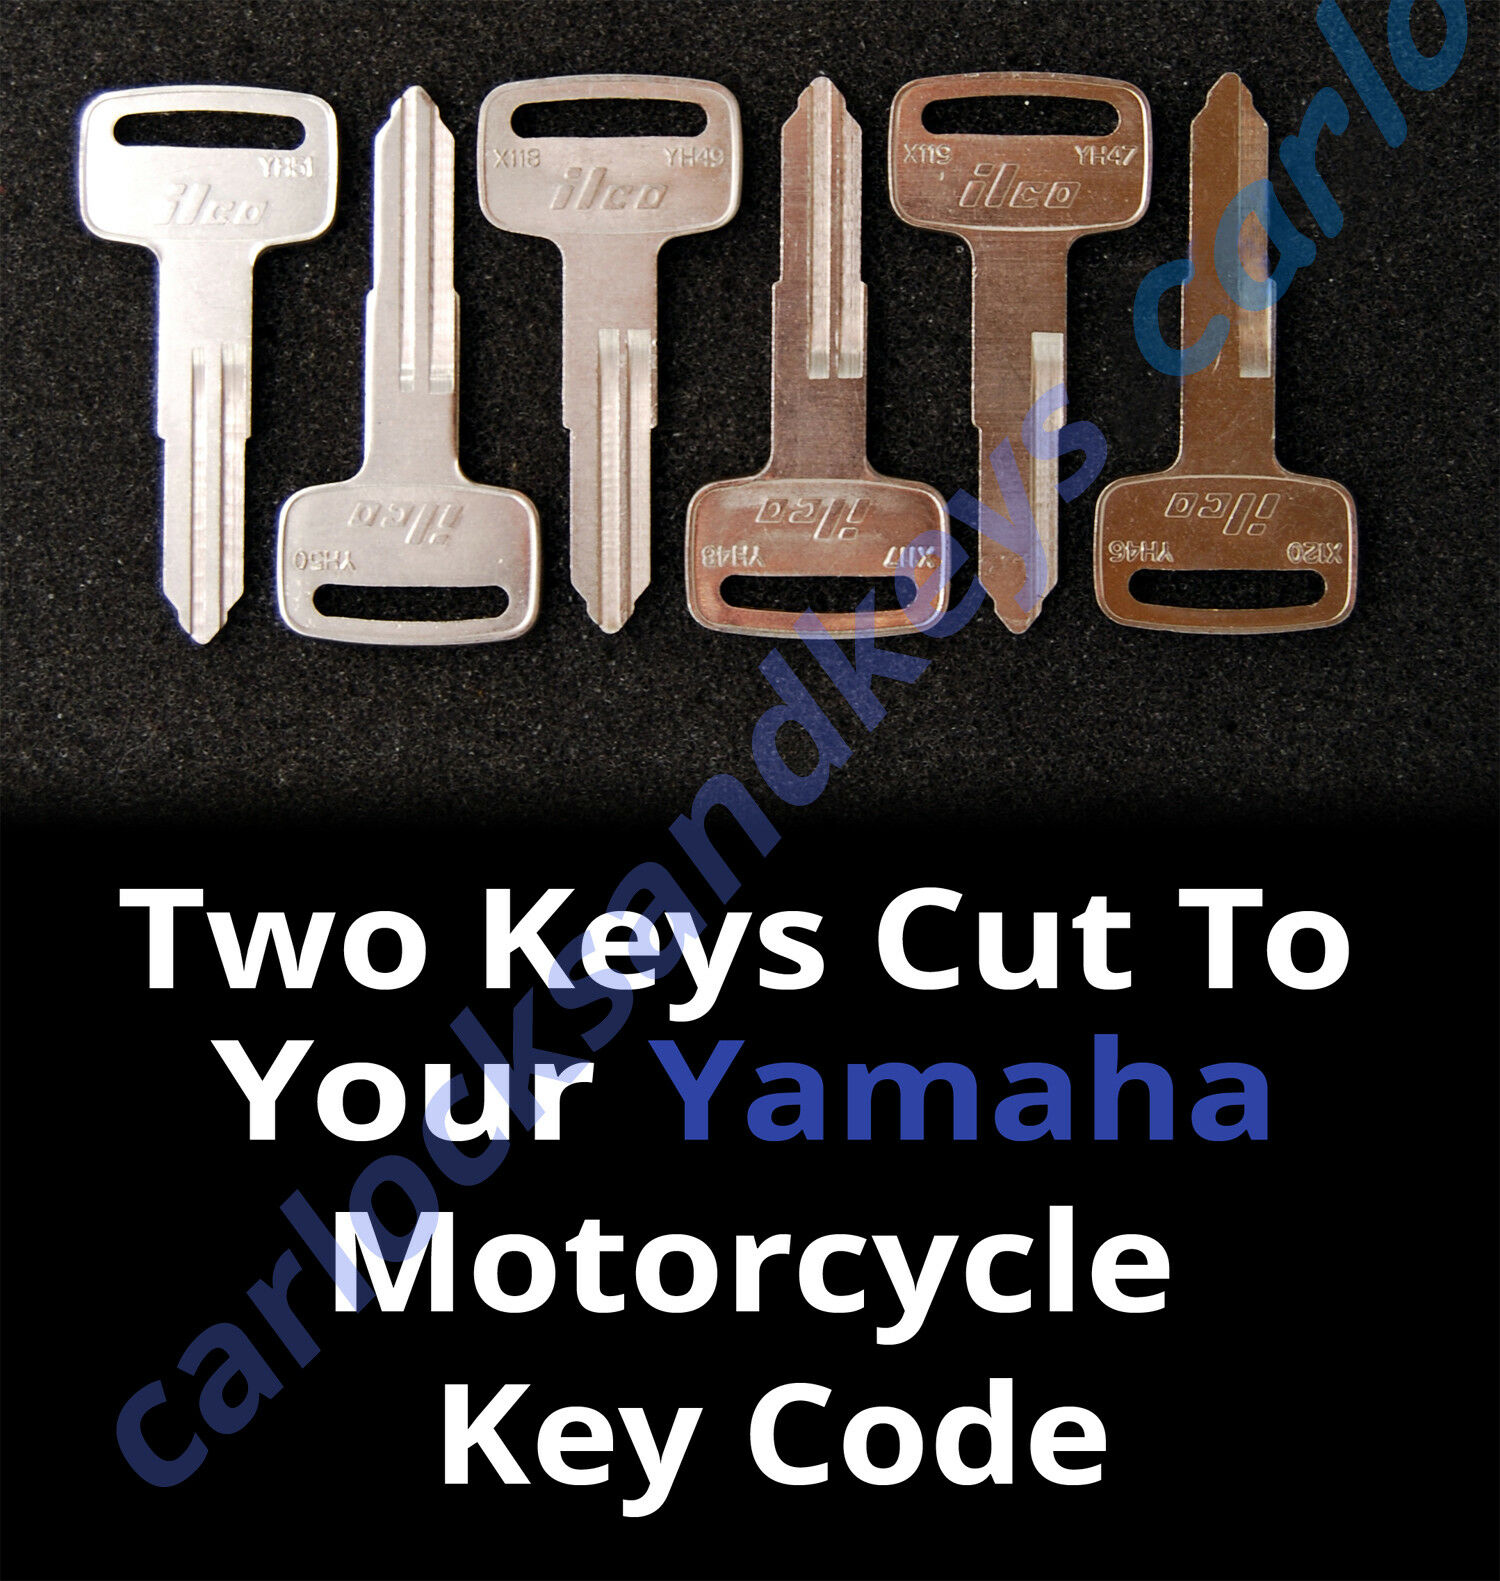 1981 2007 Yamaha Virago Motorcycle Keys Cut By Code 2 Working Fzx700 Wiring Diagram 1 Of 2free Shipping